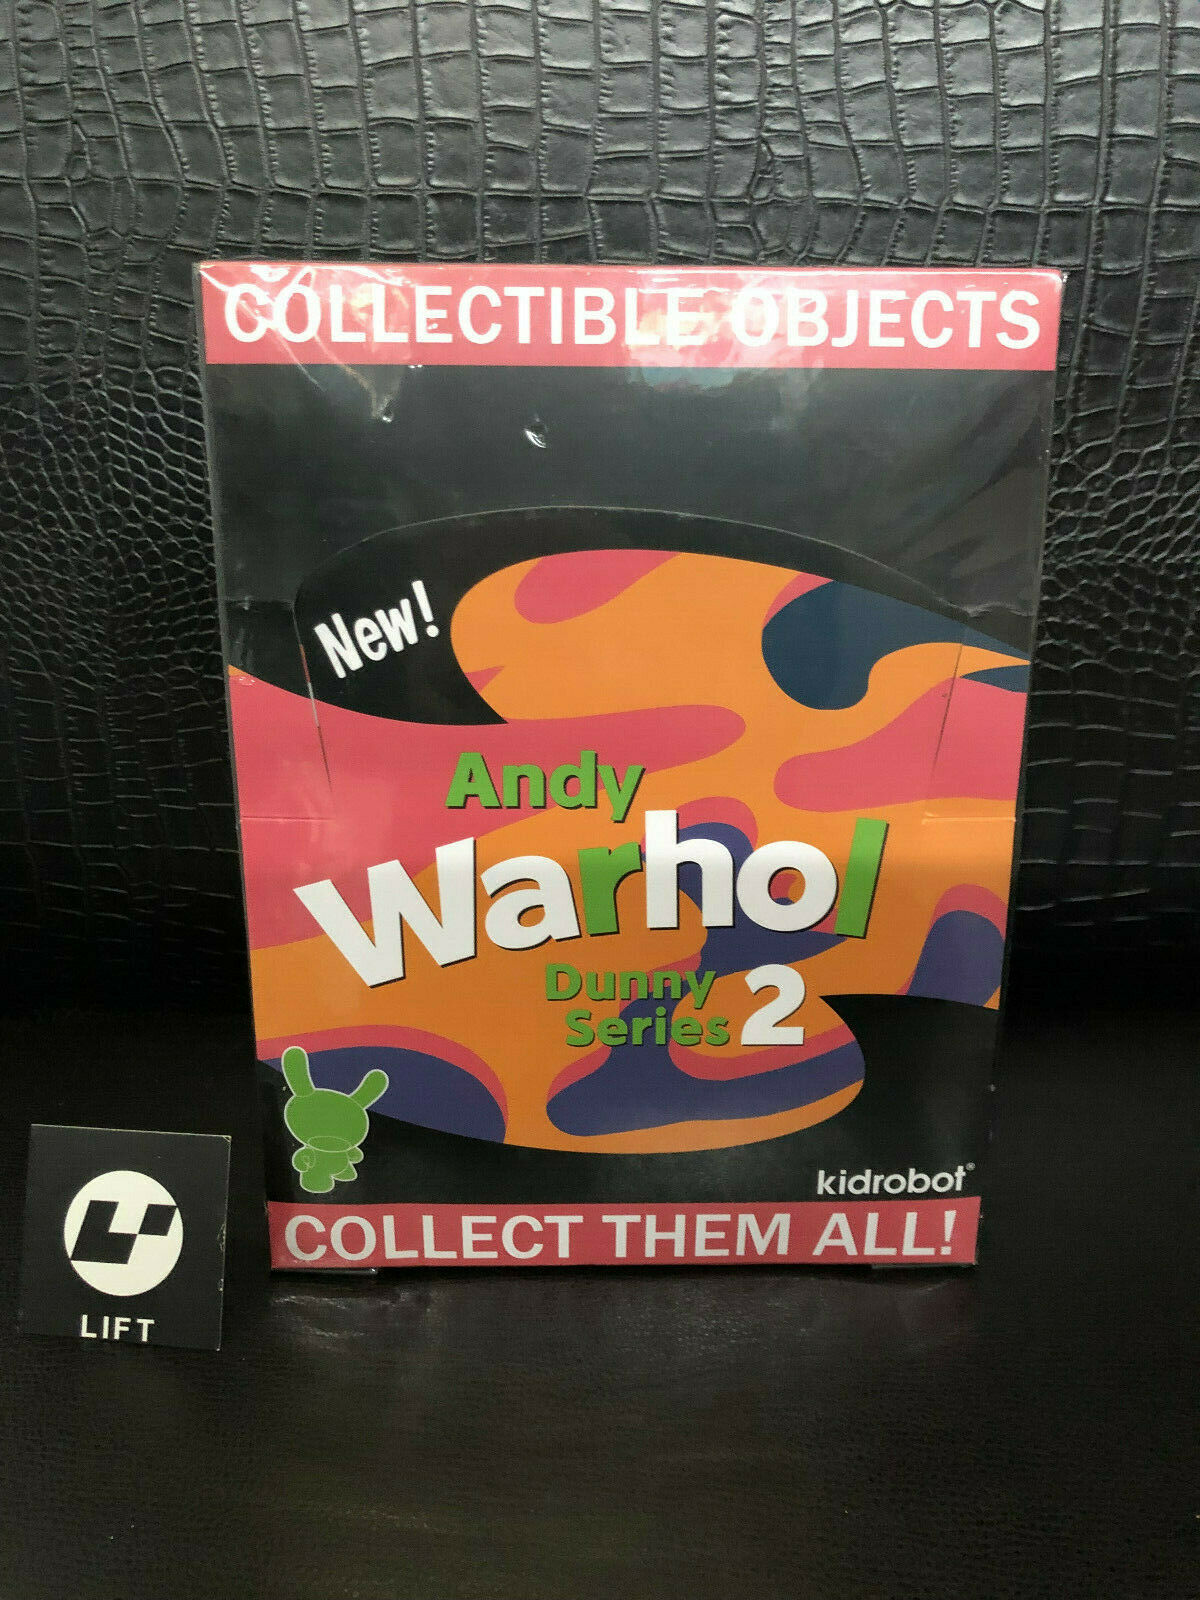 Andy Warhol Dunny Series 2 by by by Kidrobot, one sealed case of 24 pcs 135eae